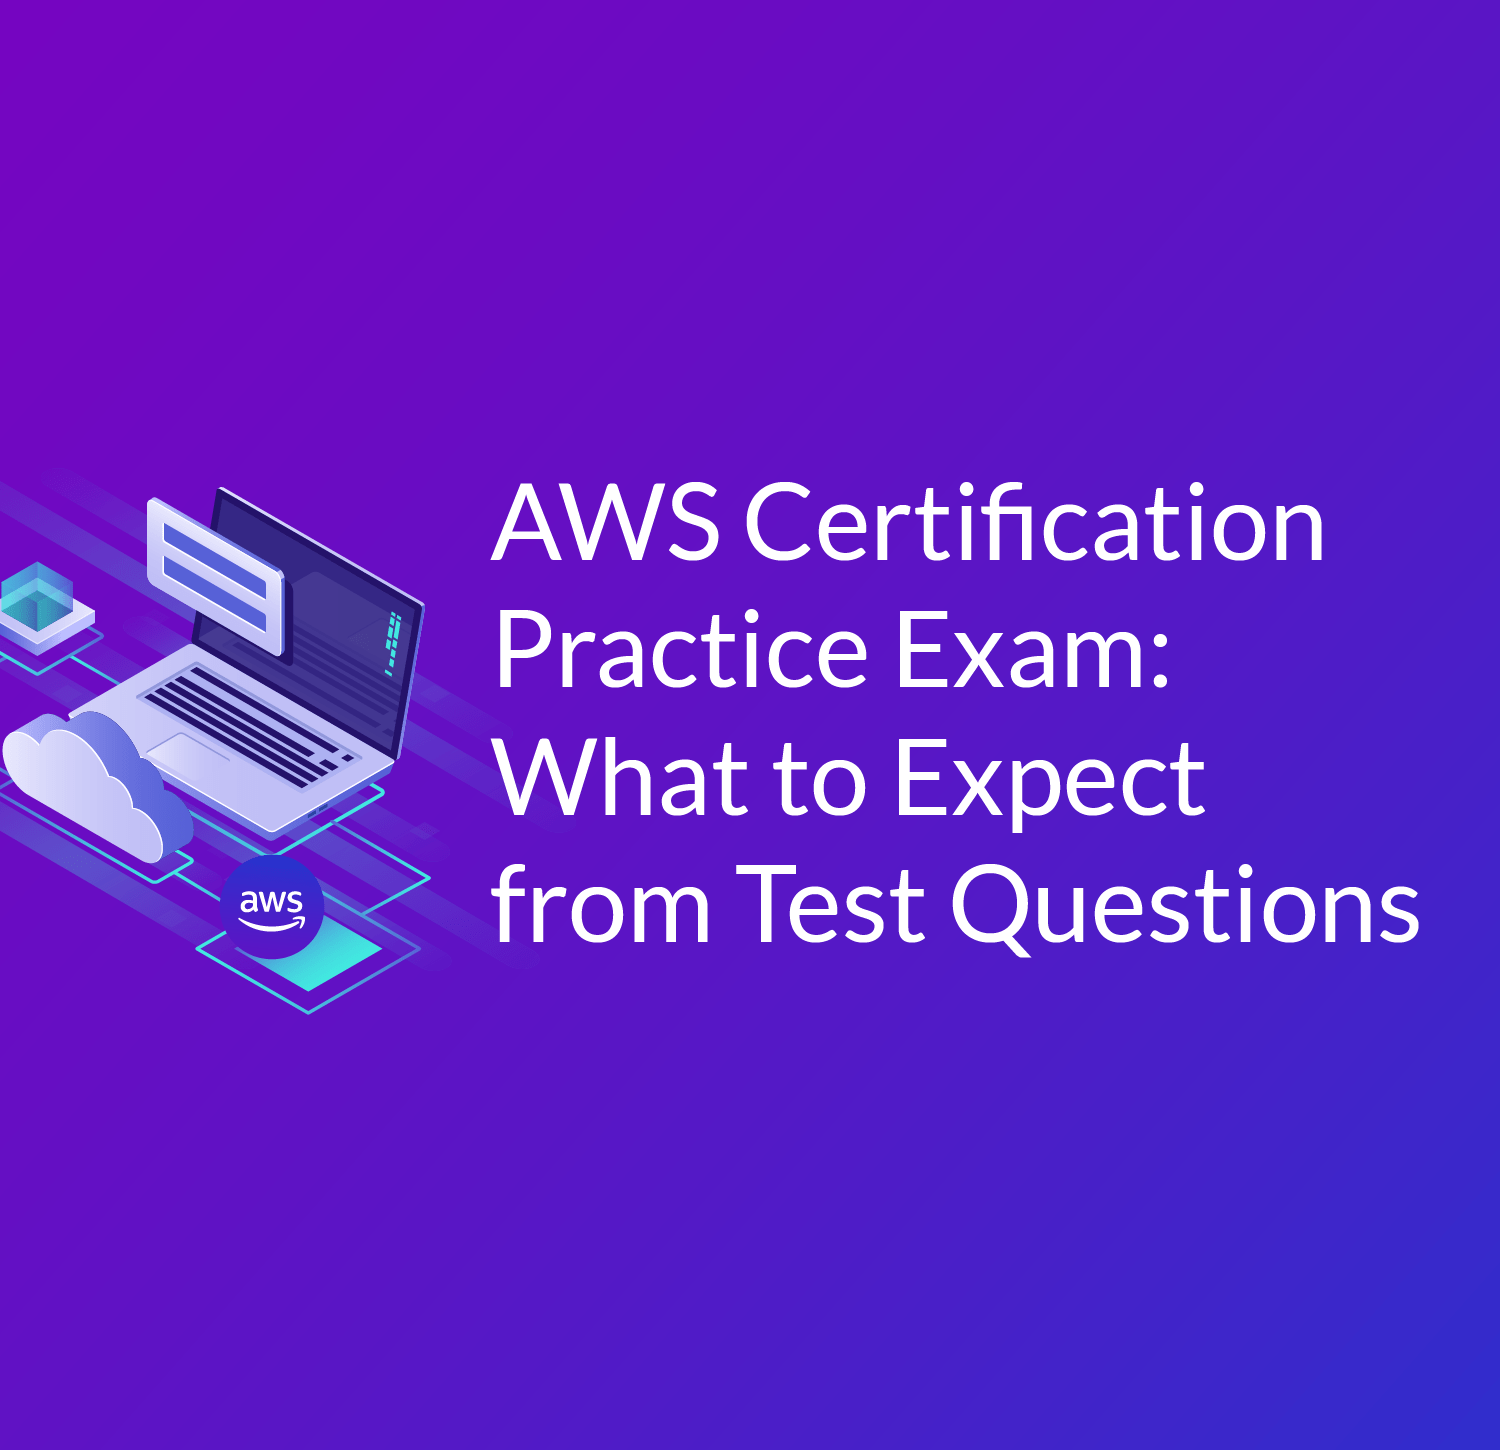 AWS Certification Practice Exam: What to Expect - Cloud Academy